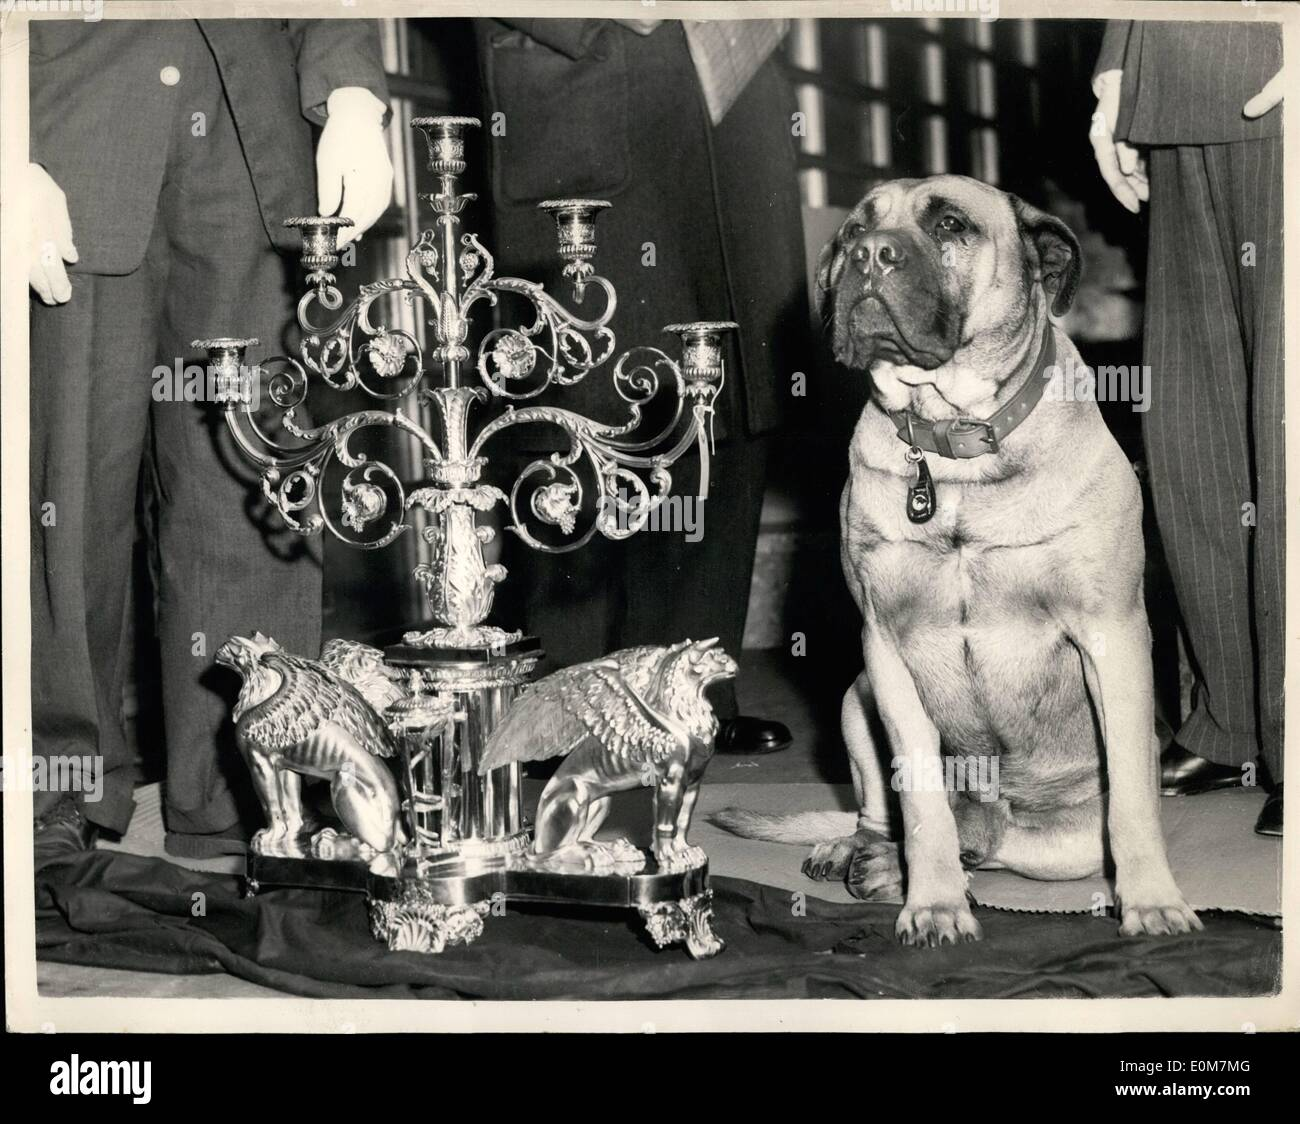 Jan. 01, 1954 - Royal Plate is Moved From The Palace: Dingaan Simoa, better known as Danny, was the last line of defence against hi-jackers when the priceless royal plate was moved from Buckingham Palace to the Victoria and Albert Museum today. Danny, a 3-year old ull mastiff, and his Scots-born owner, Mr. Alex Sinclair, stayed in the van carrying the plate on the one-and-a-half mile journey. The removal of the Queen's plate is his most important job to date. The museum exhibition, from February 19 to April 19, has been made possible only through the absence aboard of the Queen - Stock Image